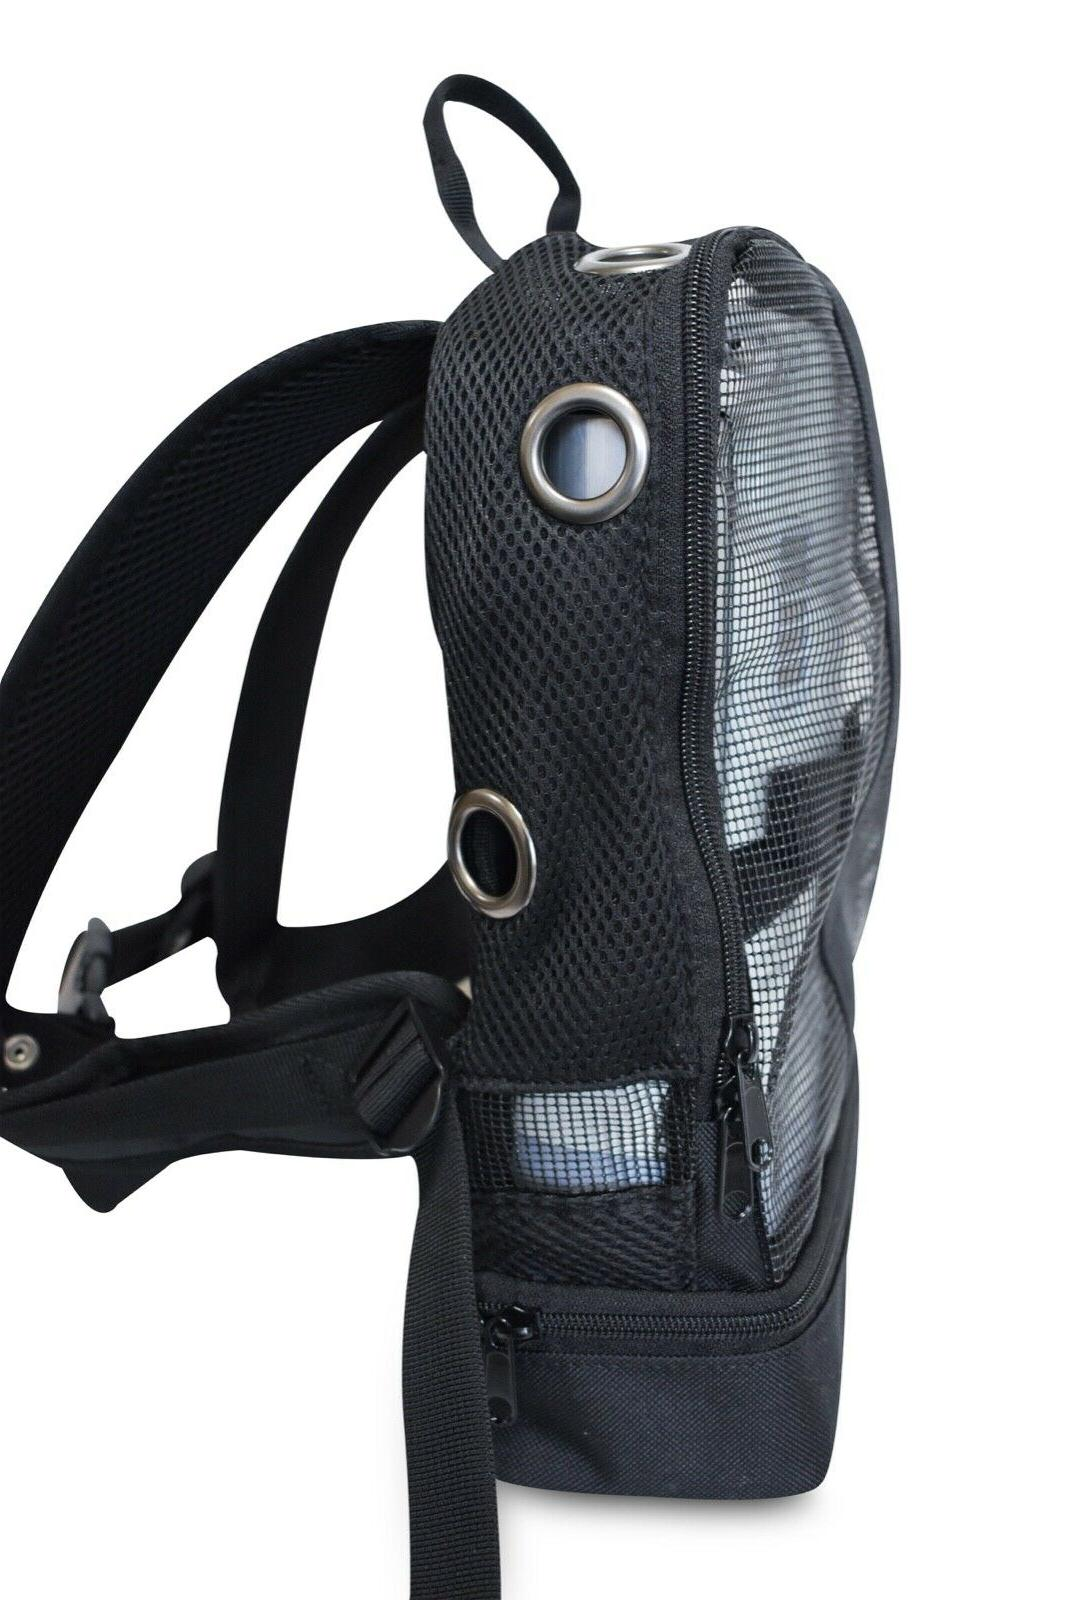 Mesh Backpack for Oxygen Comfort/o2totes